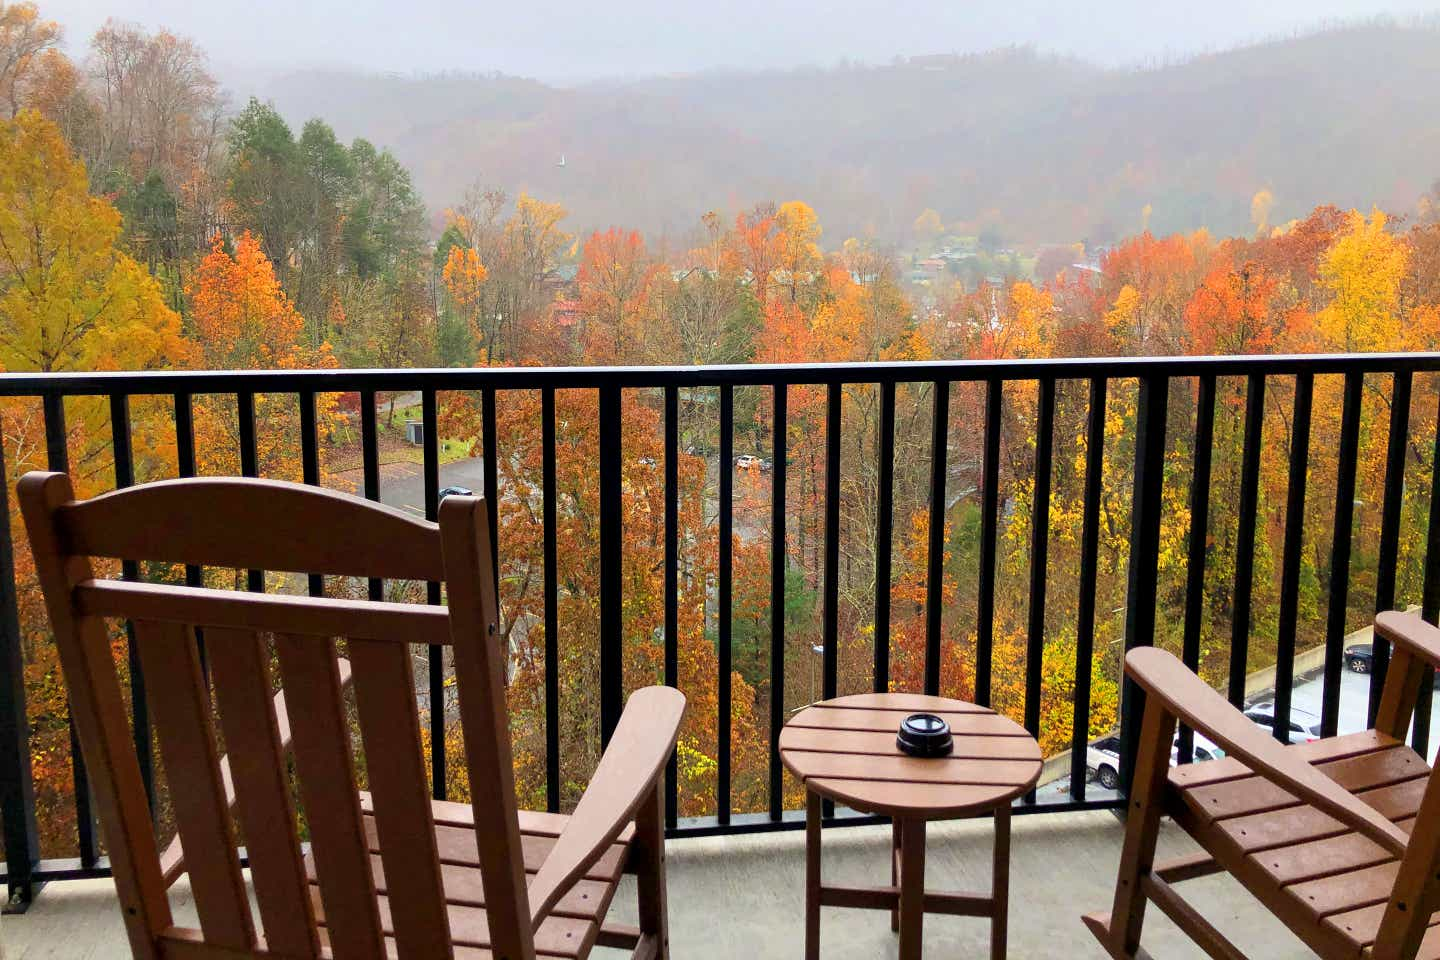 Two rocking chairs face towards fall foliage on the patio of our villa at Smoky Mountain Resort in Gatlinburg, Tennessee.